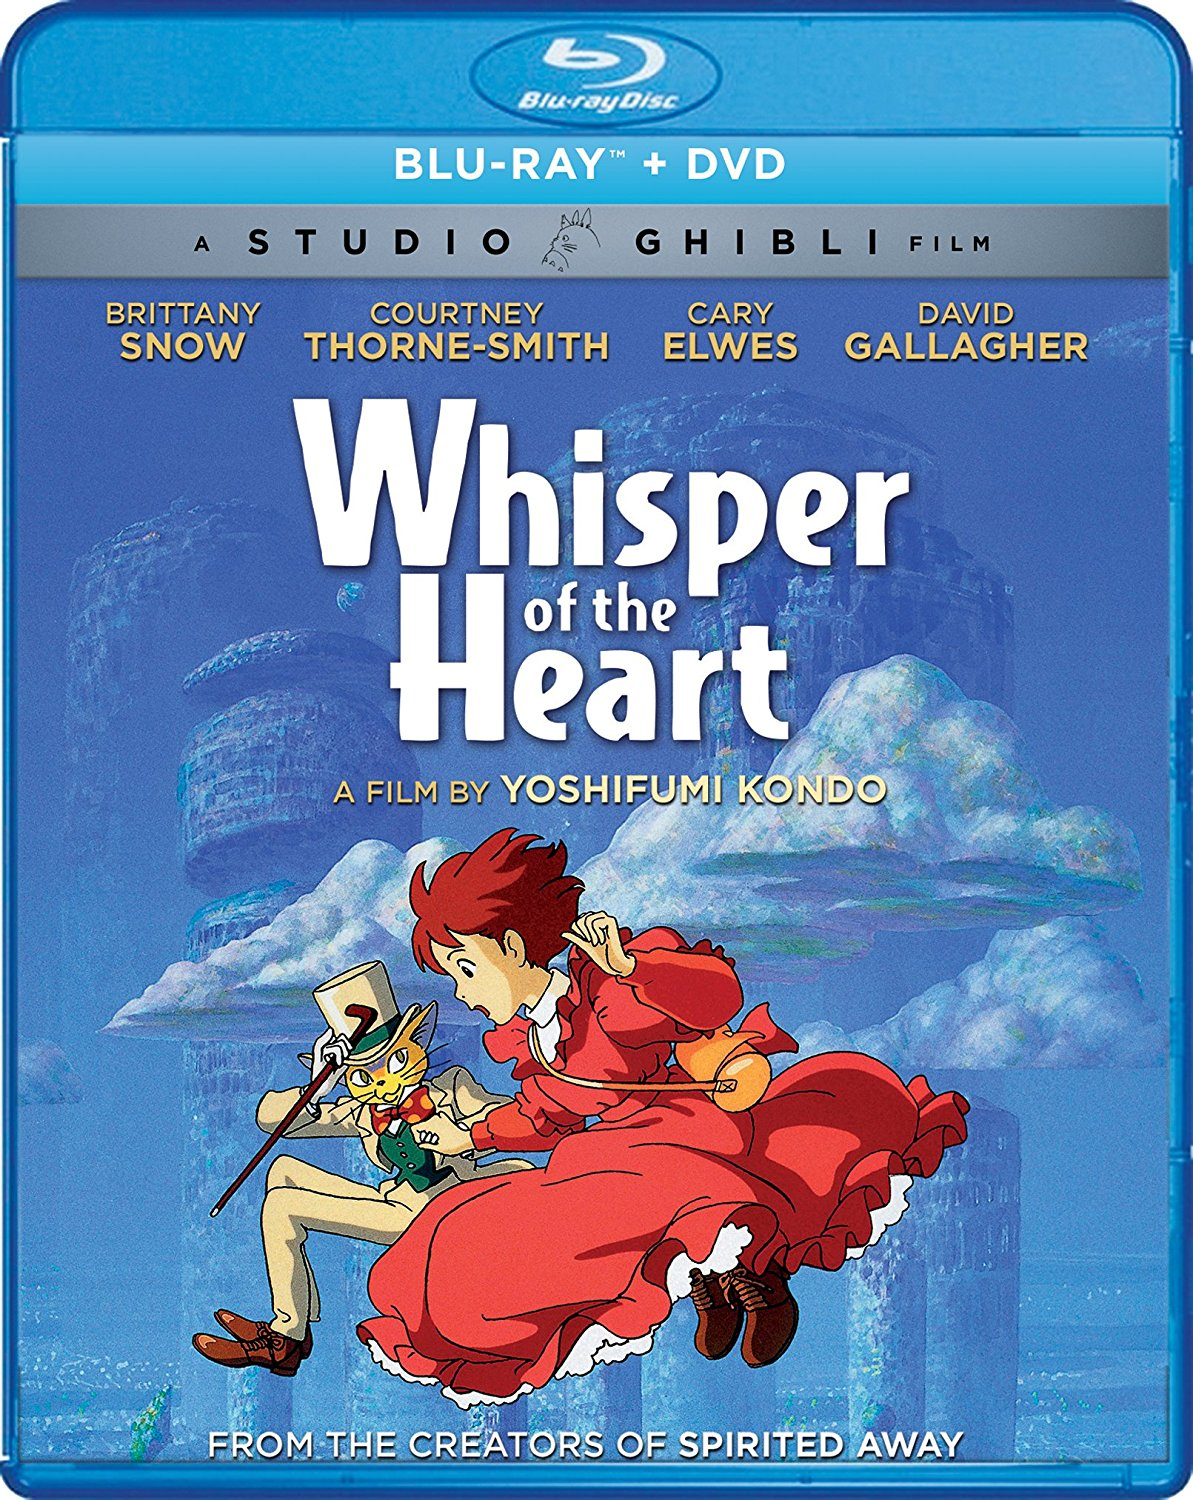 Whisper of the Heart Blu-ray/DVD 826663181524